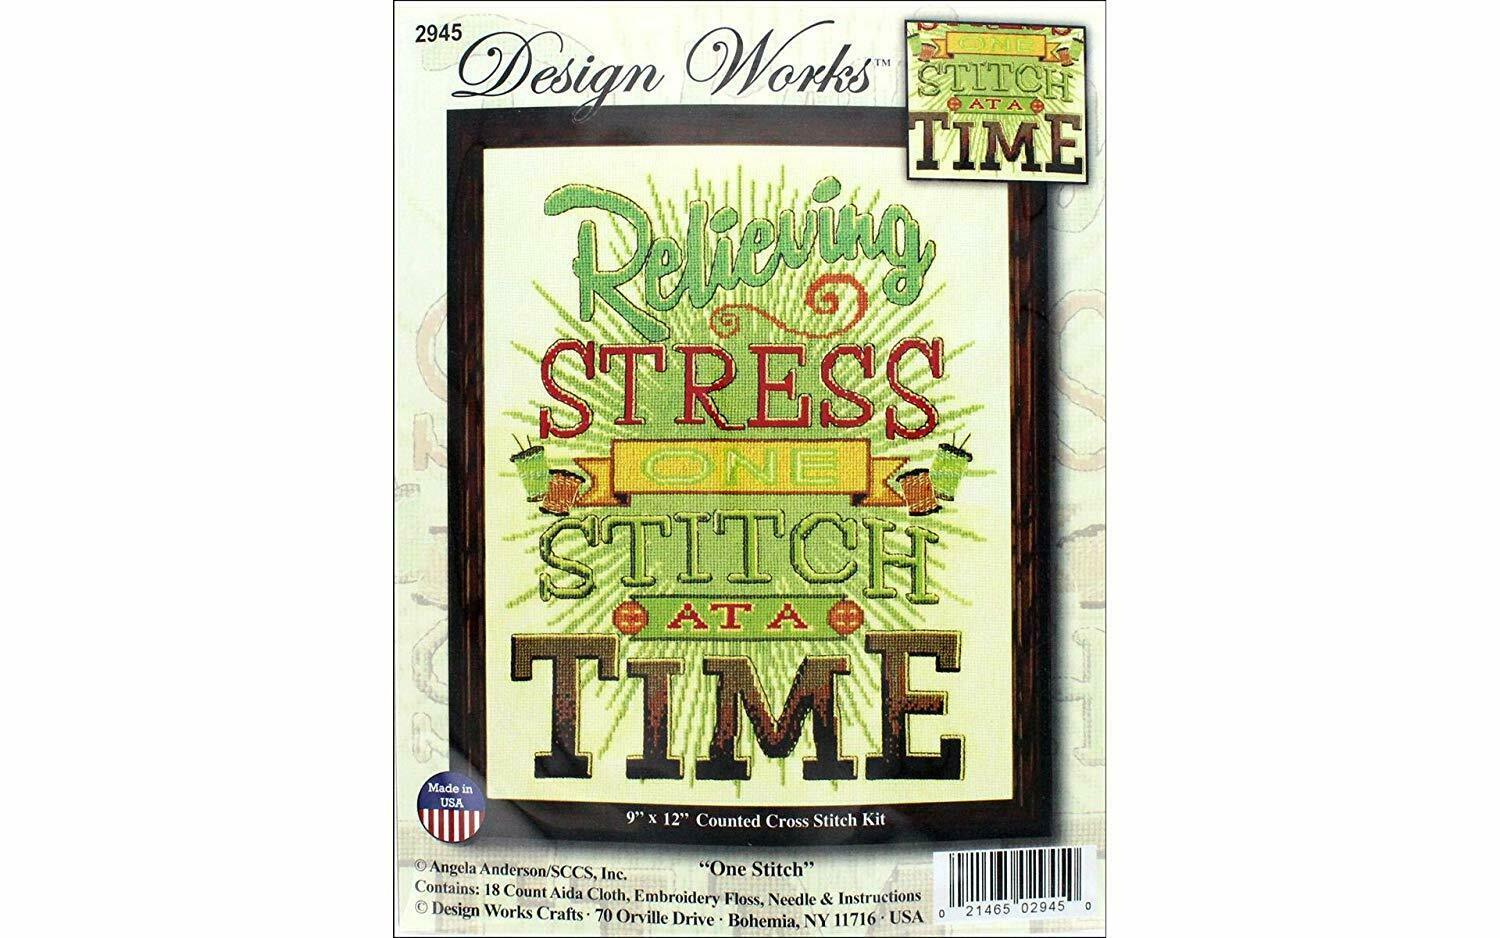 Relieving Stress One Stitch At a Time Counted Cross Stitch Kit New Design Works  - $21.77